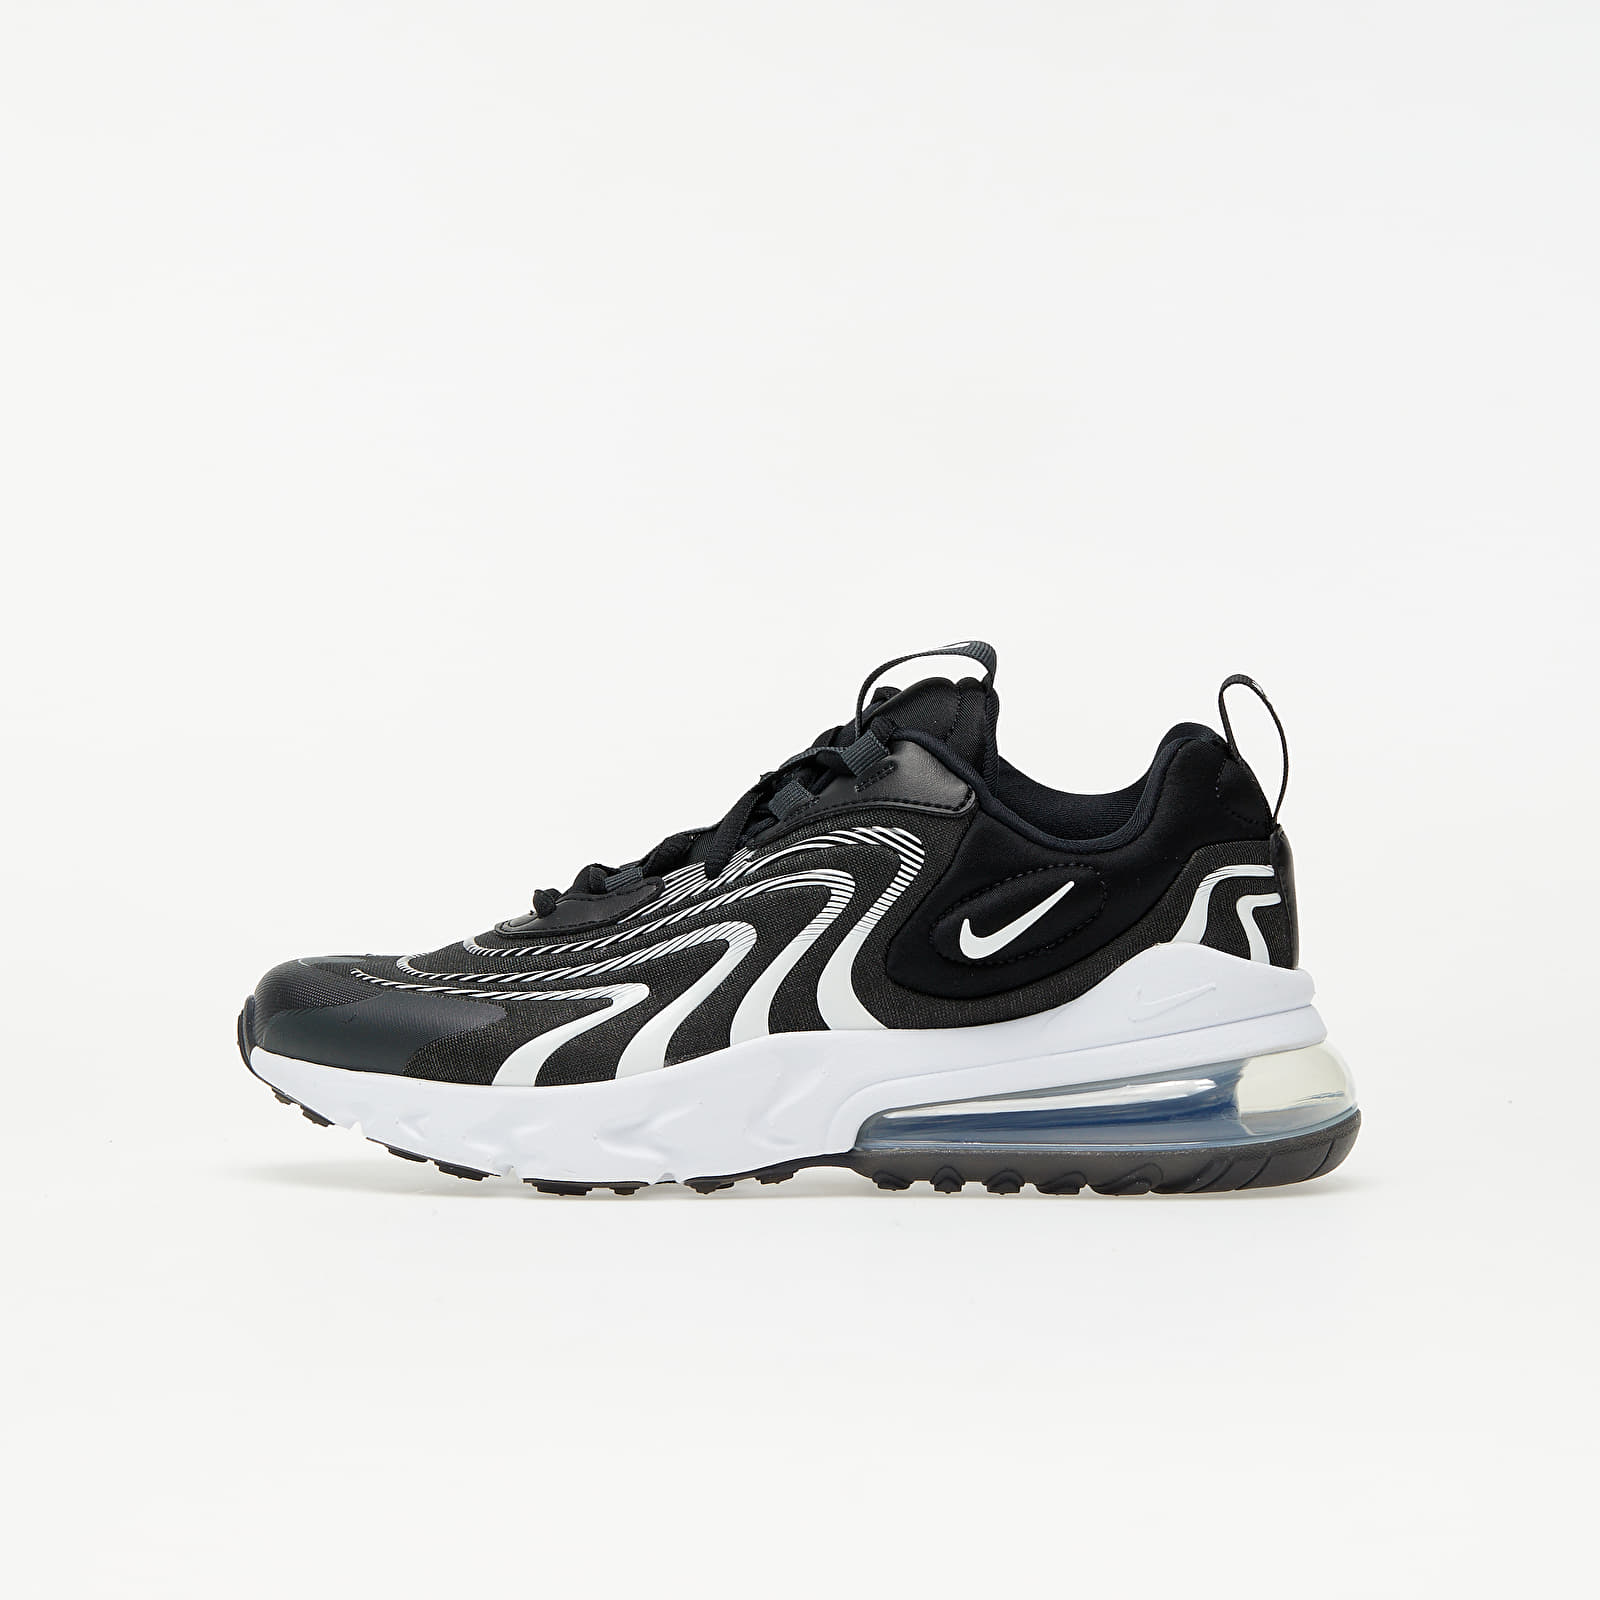 Nike Air Max 270 React ENG (GS) Black/ White-Dk Smoke Grey-Wolf Grey EUR 38.5